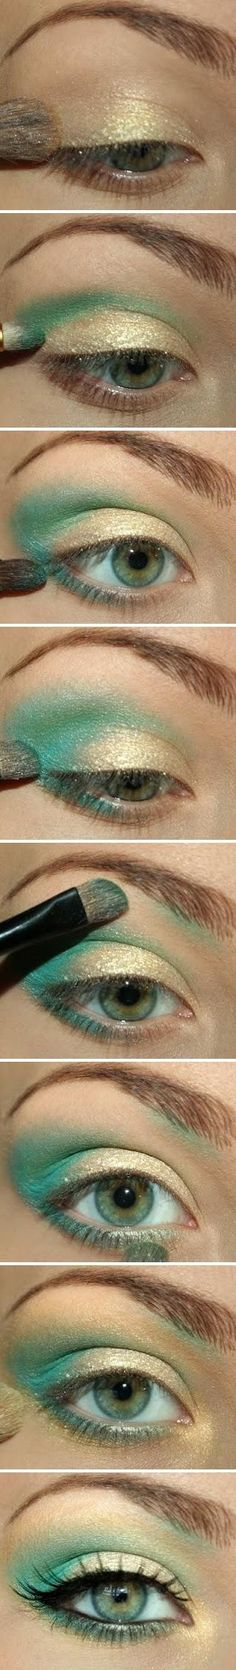 i had someone tell me once not to cover my whole eye in eye shadow but hey look at this similar to what i do! Makeup green eye shadow (probably pretty with any color blue or brown with the gold)